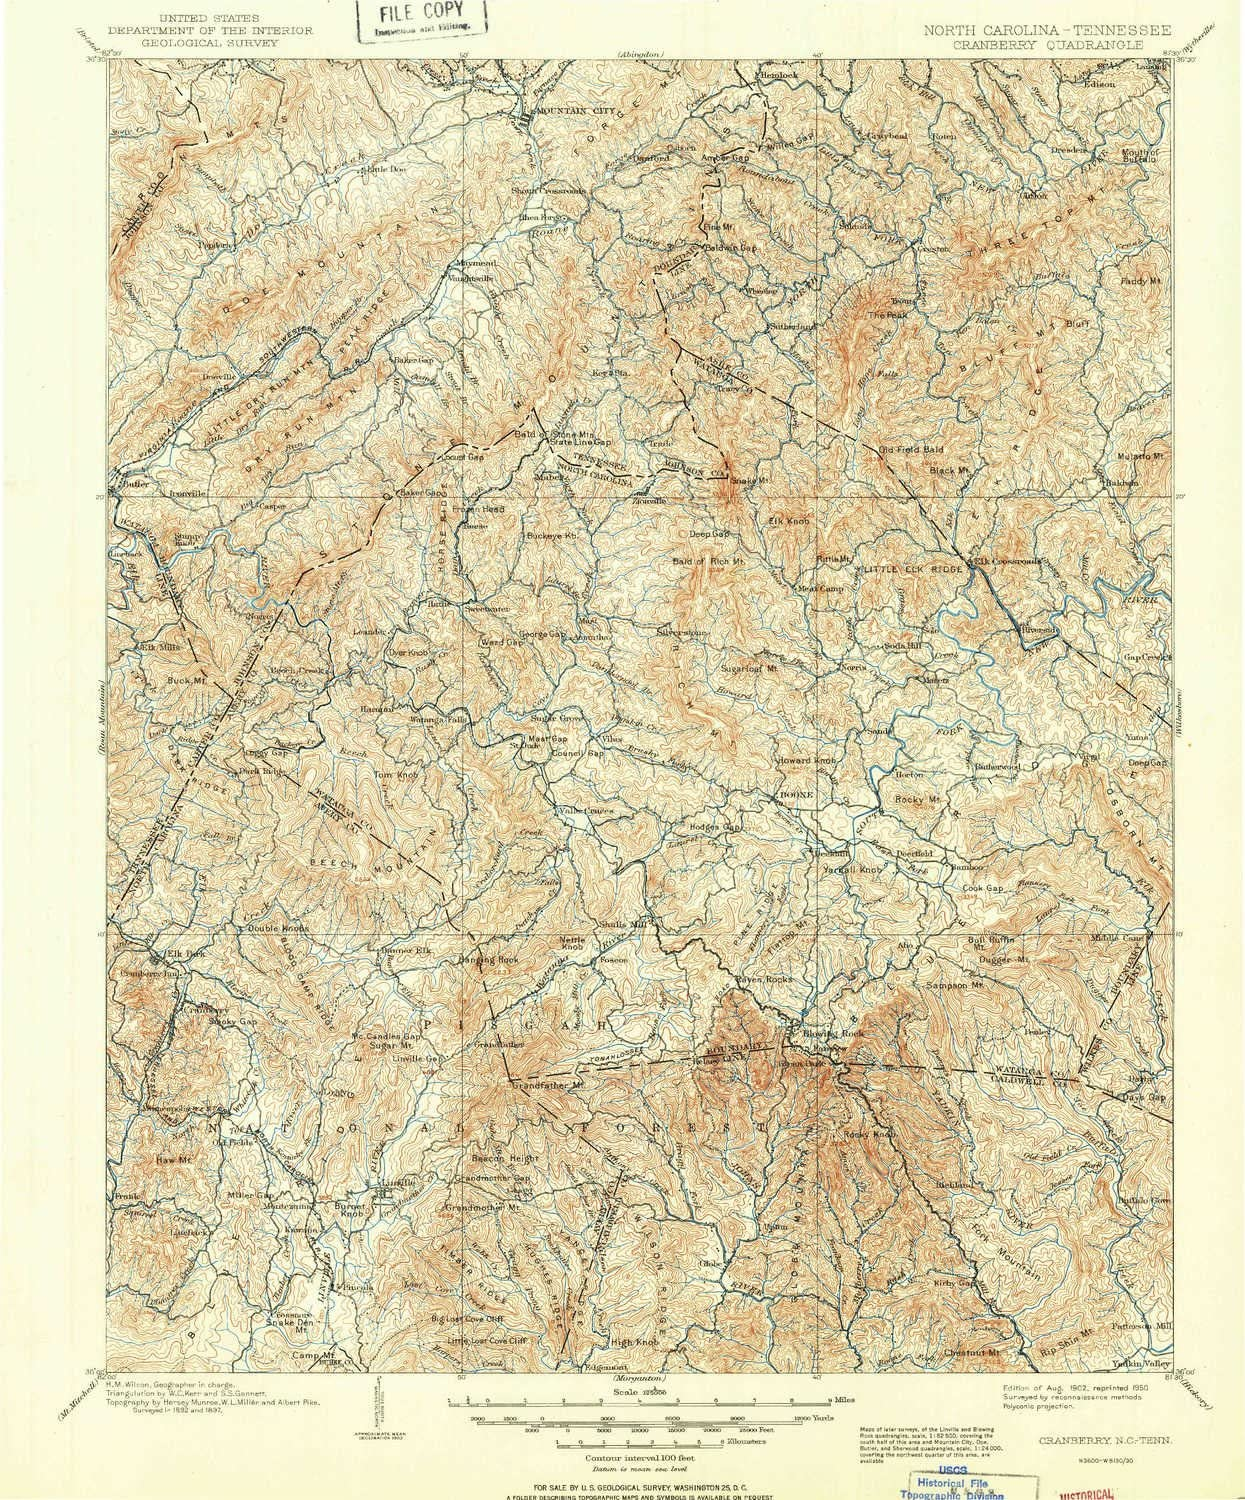 YellowMaps Cranberry NC topo map 1:125000 30 Scale X Minute OFFicial store free shipping